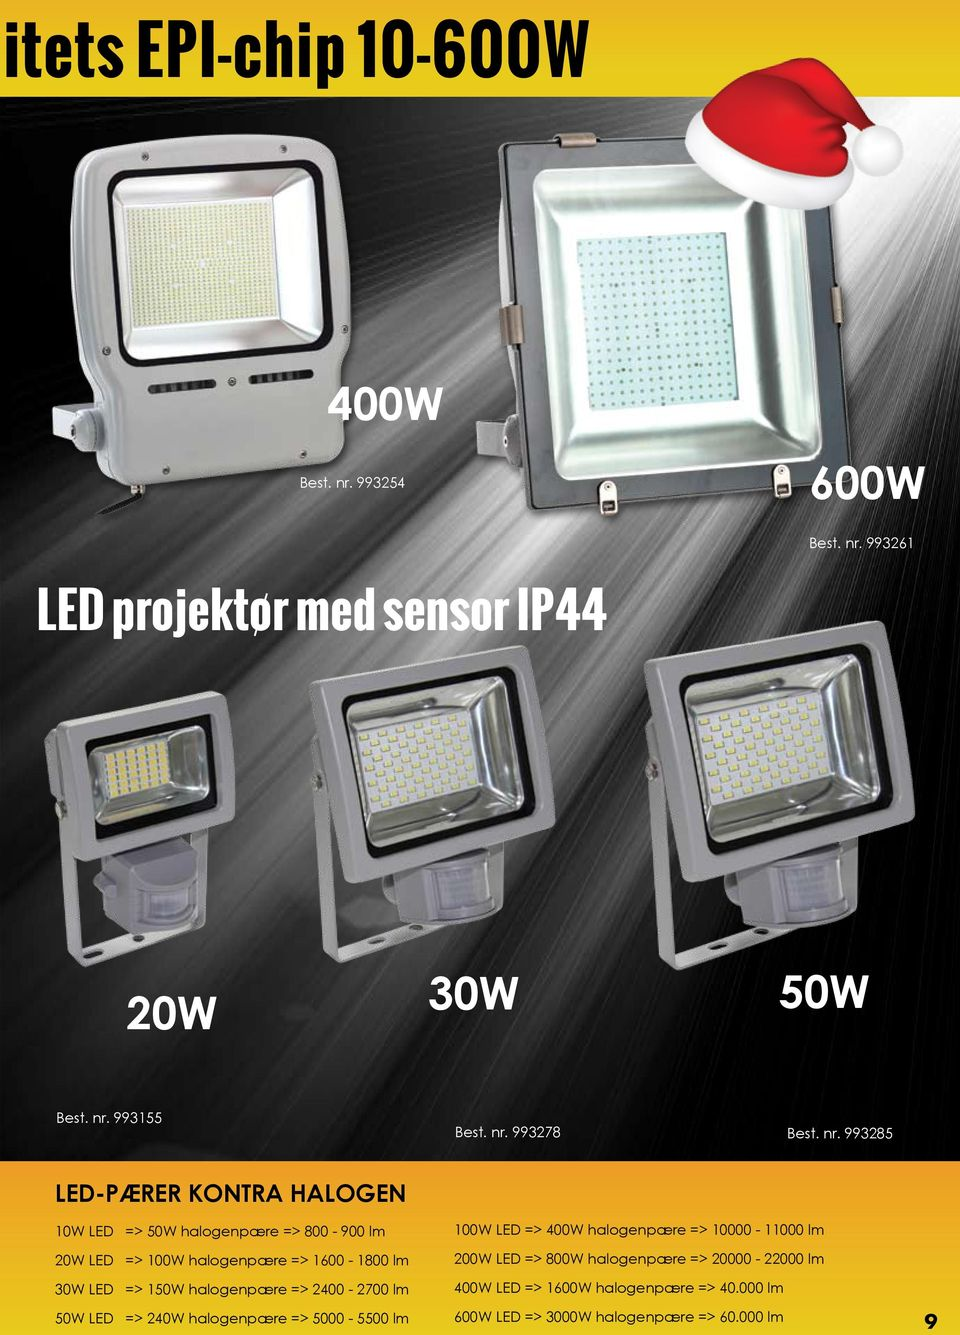 halogenpære => 2400-2700 lm 50W LED => 240W halogenpære => 5000-5500 lm 100W LED => 400W halogenpære => 10000-11000 lm 200W LED => 800W